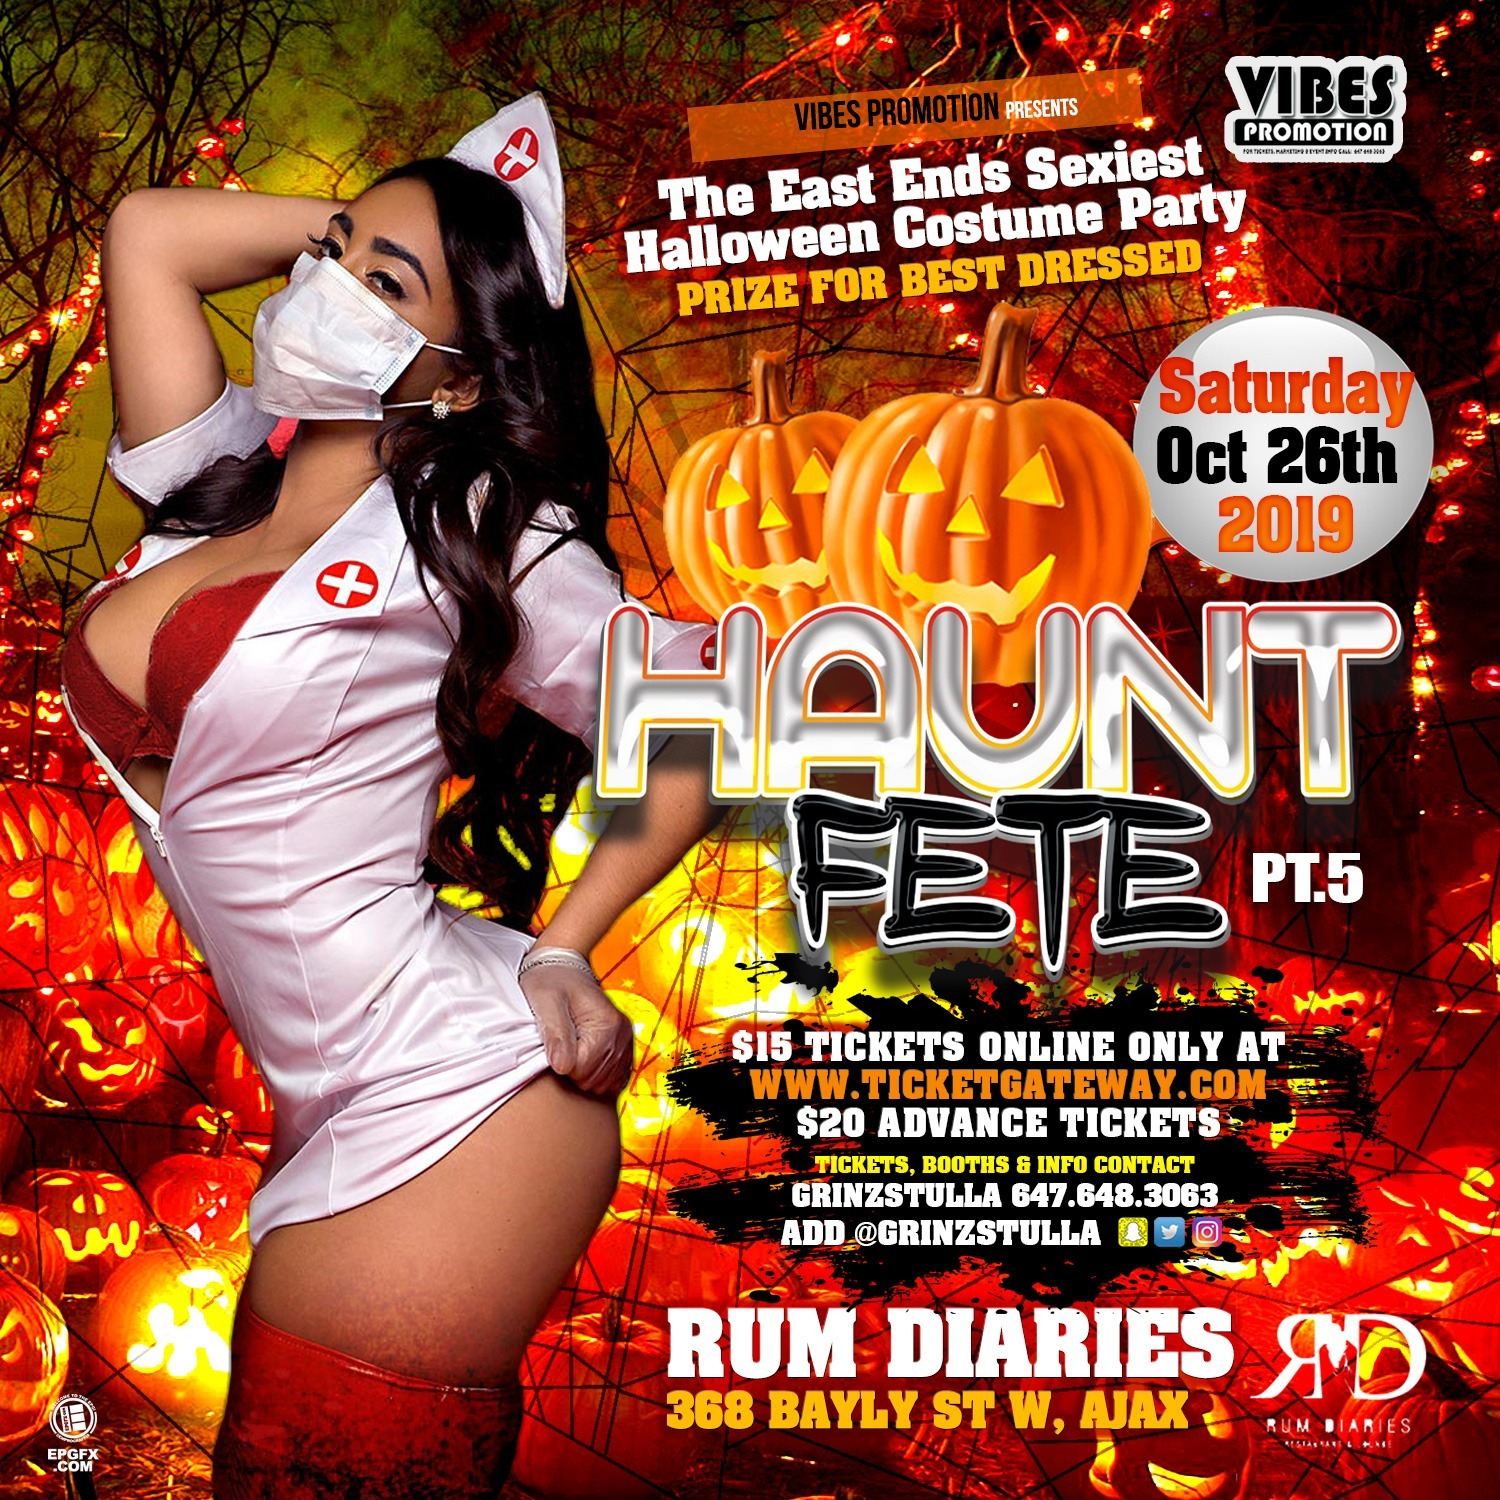 Haunt Fete Part 5 - The East Ends Sexiest Halloween Costume Party